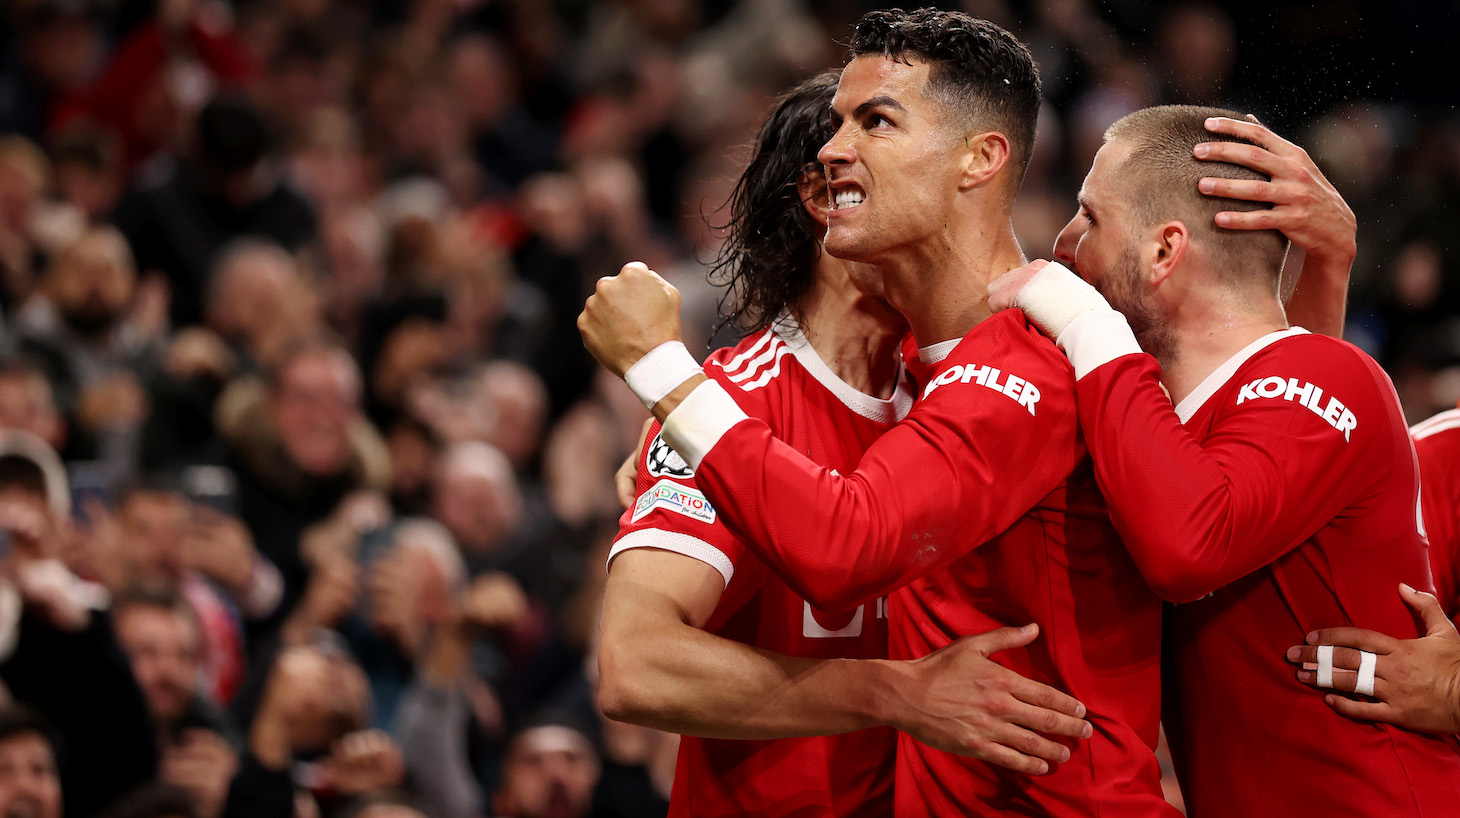 Cristiano Ronaldo of Manchester United celebrates after scoring their side's third goal during the UEFA Champions League group F match between Manchester United and Atalanta at Old Trafford on October 20, 2021 in Manchester, England.